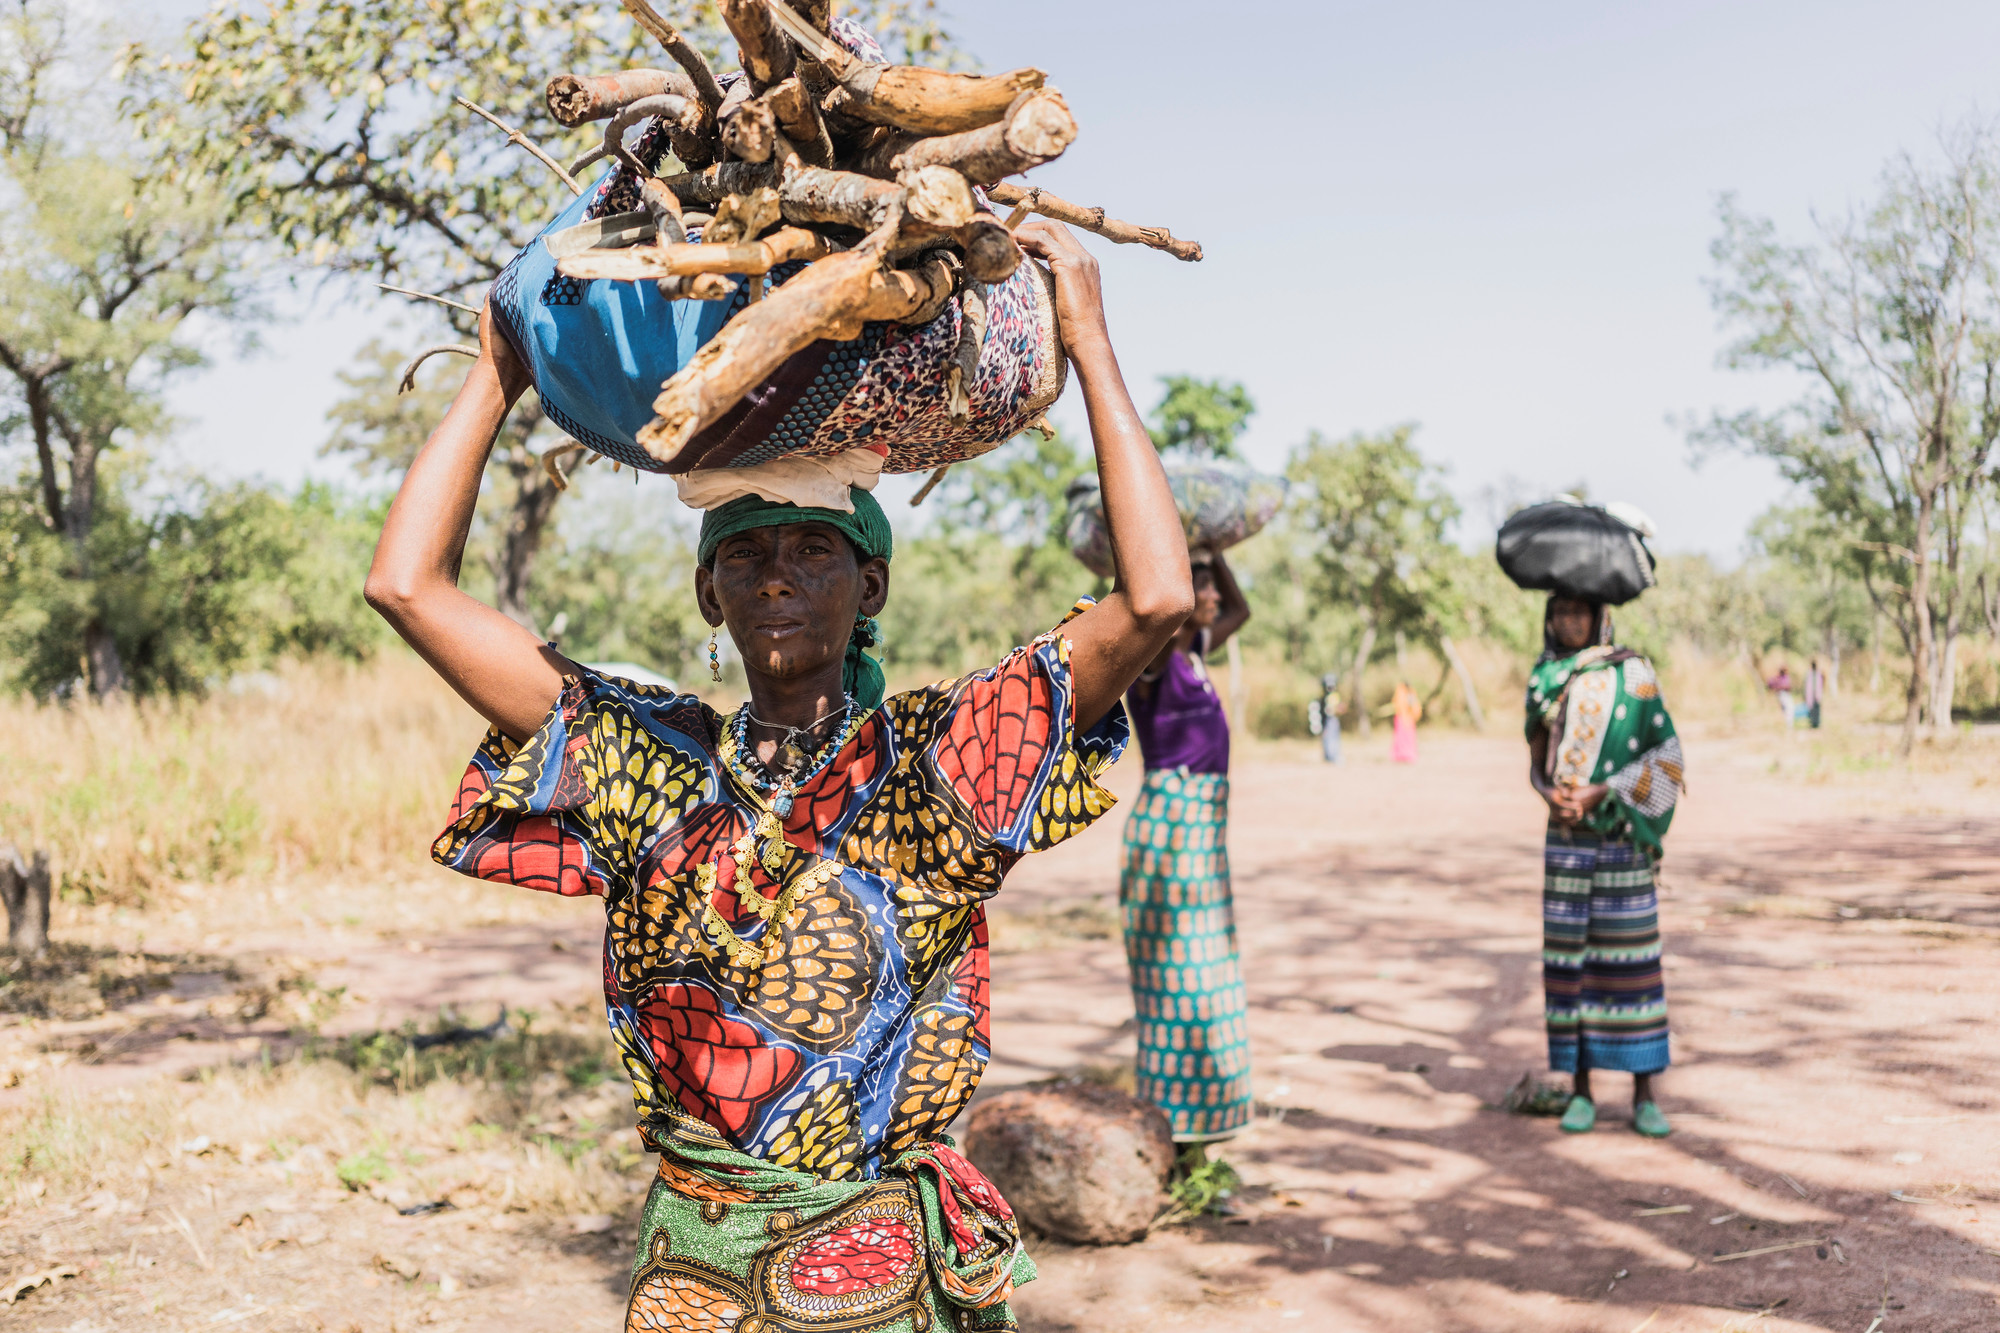 A wan standing outside carries a bundle of firewood on her head.